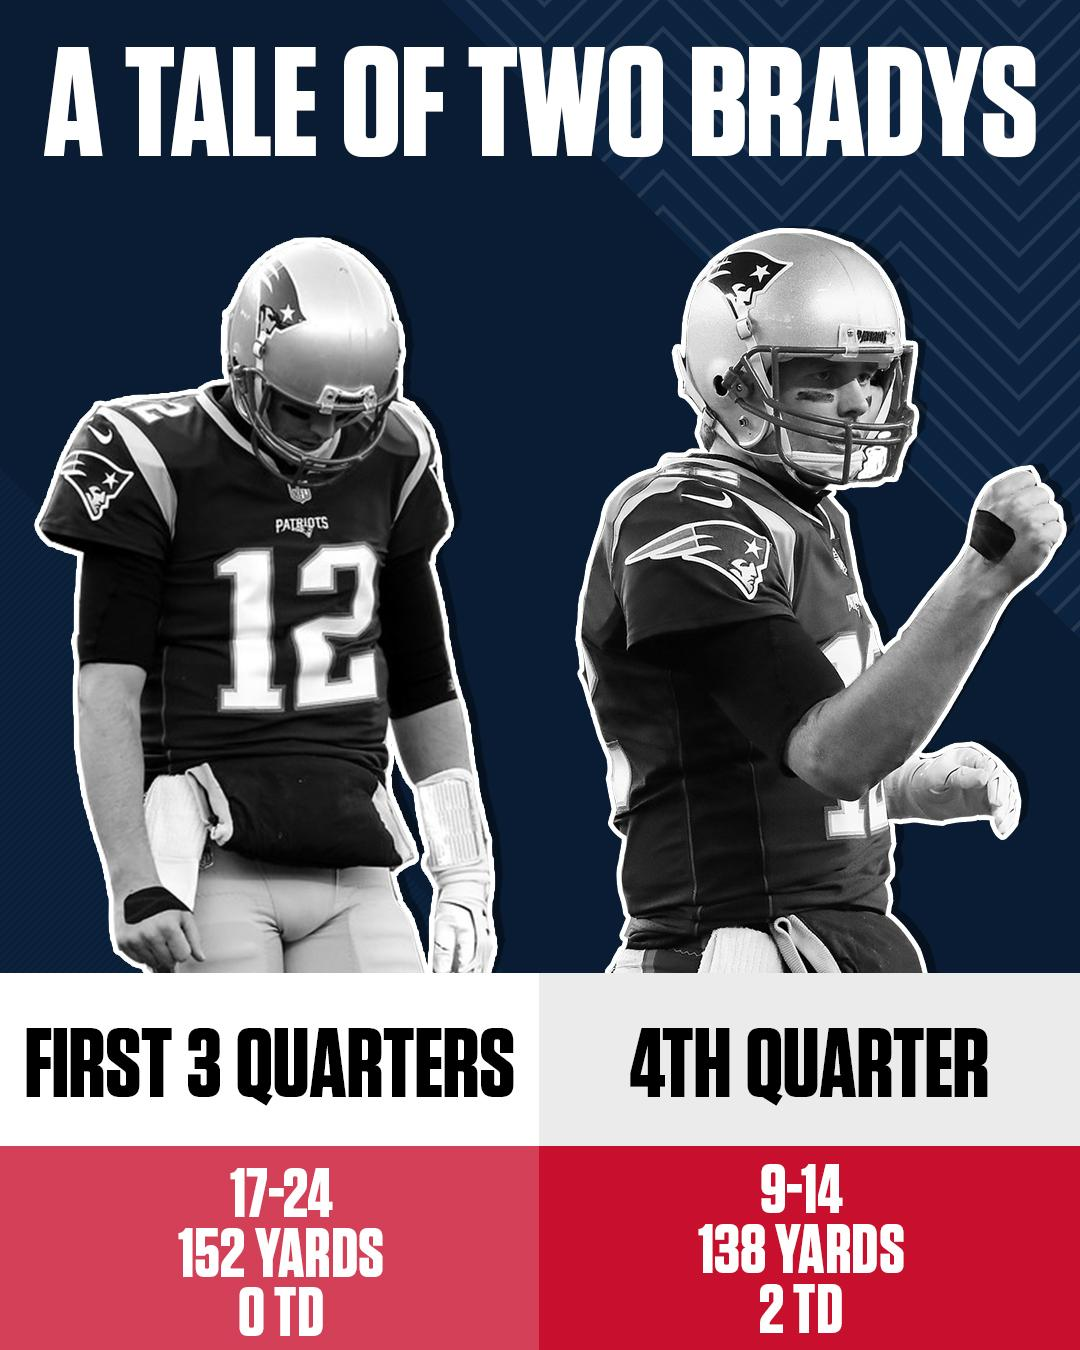 The Jacksonville Jaguars found out what happens to Tom Brady in the 4th quarter. https://t.co/IMm7ybvNtY